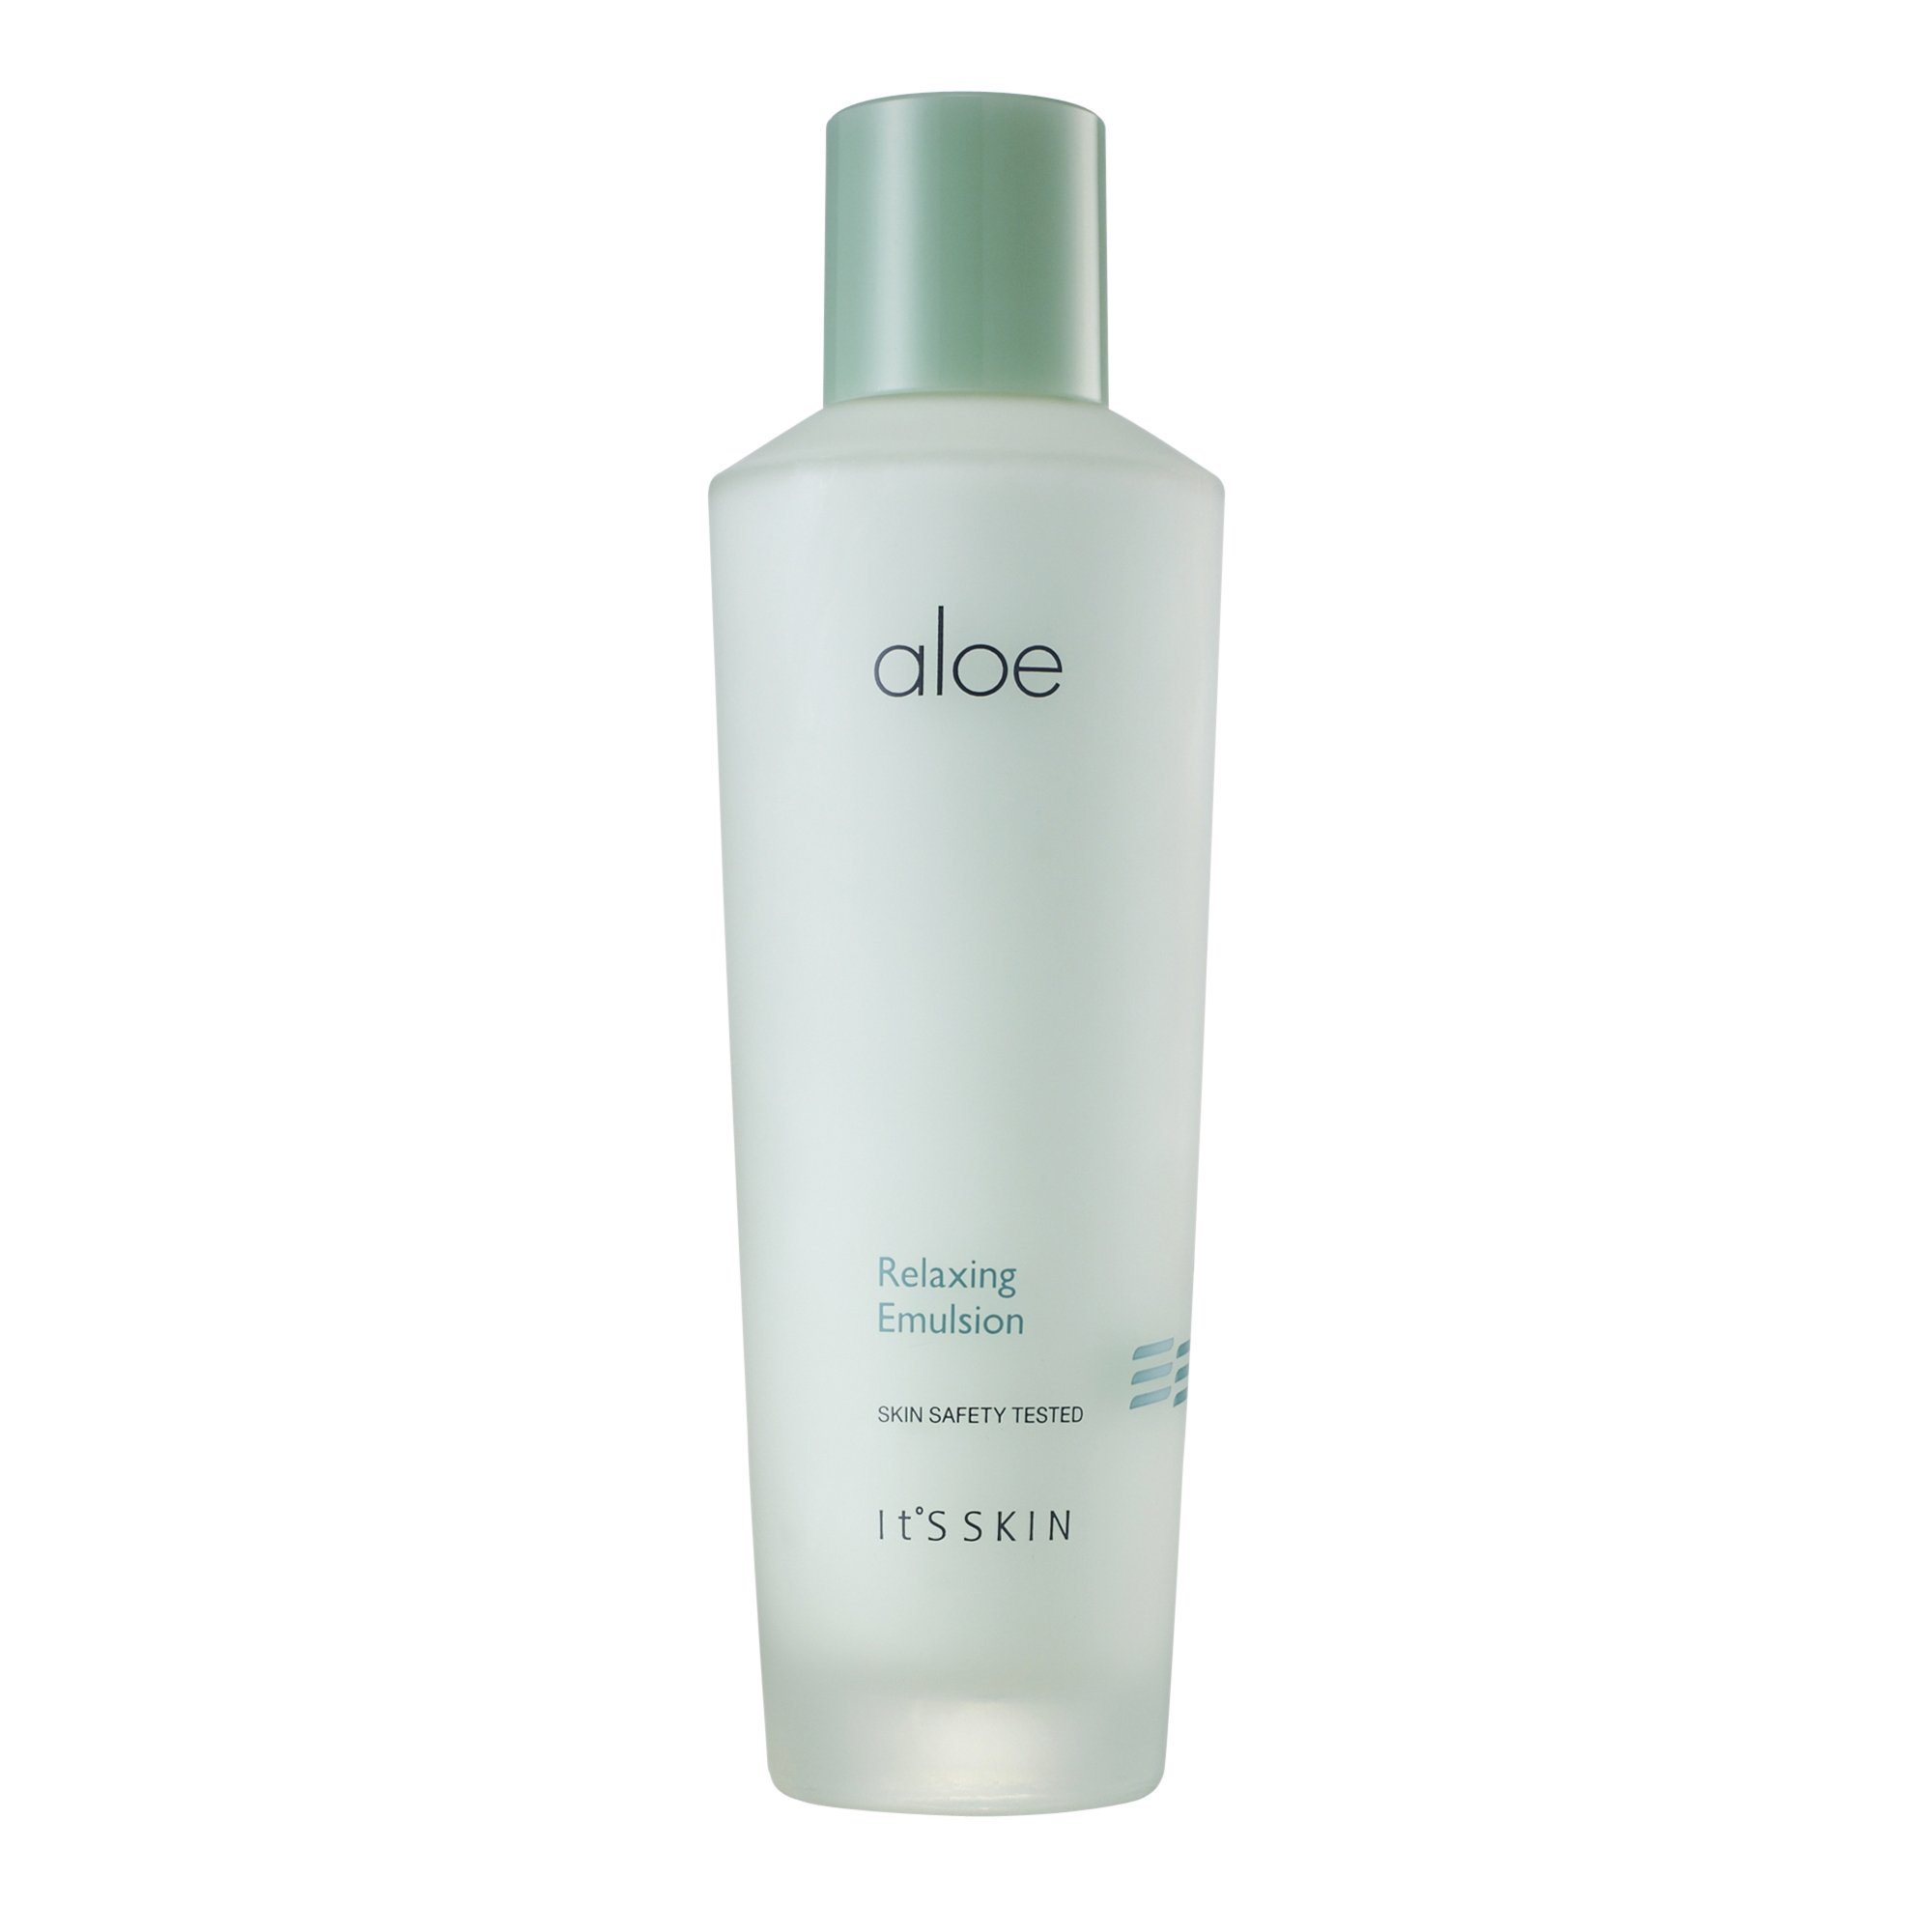 Health & Beauty > Personal Care > Cosmetics > Skin Care > Lotion & Moisturizer - Aloe Relaxing Emulsion Emulsja Do Twarzy 150 Ml